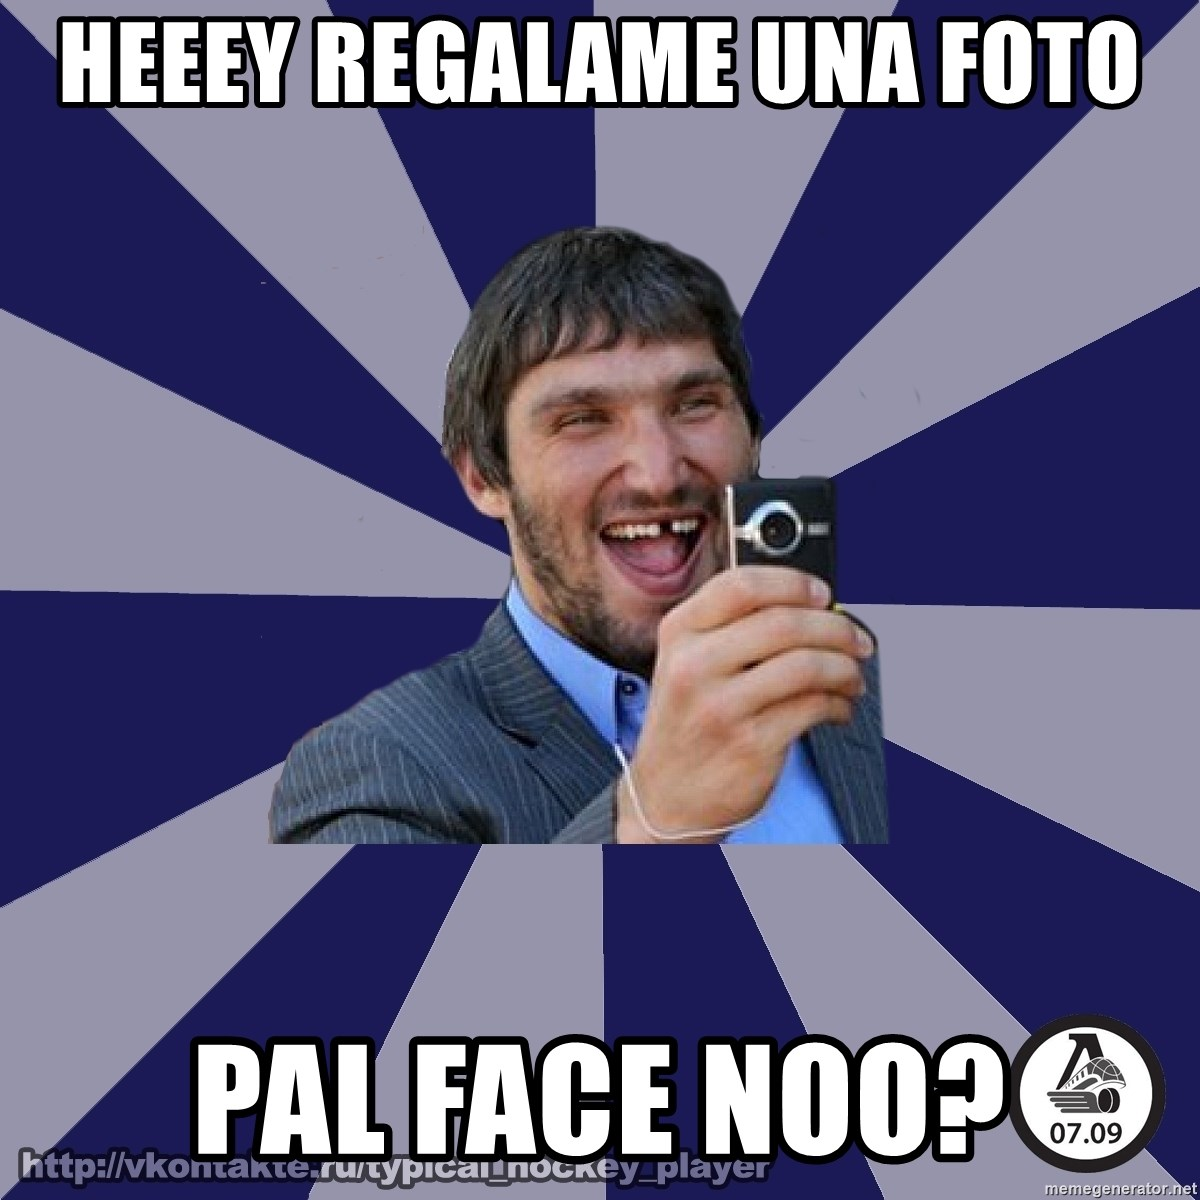 typical_hockey_player - heeey regalame una foto pal face noo?